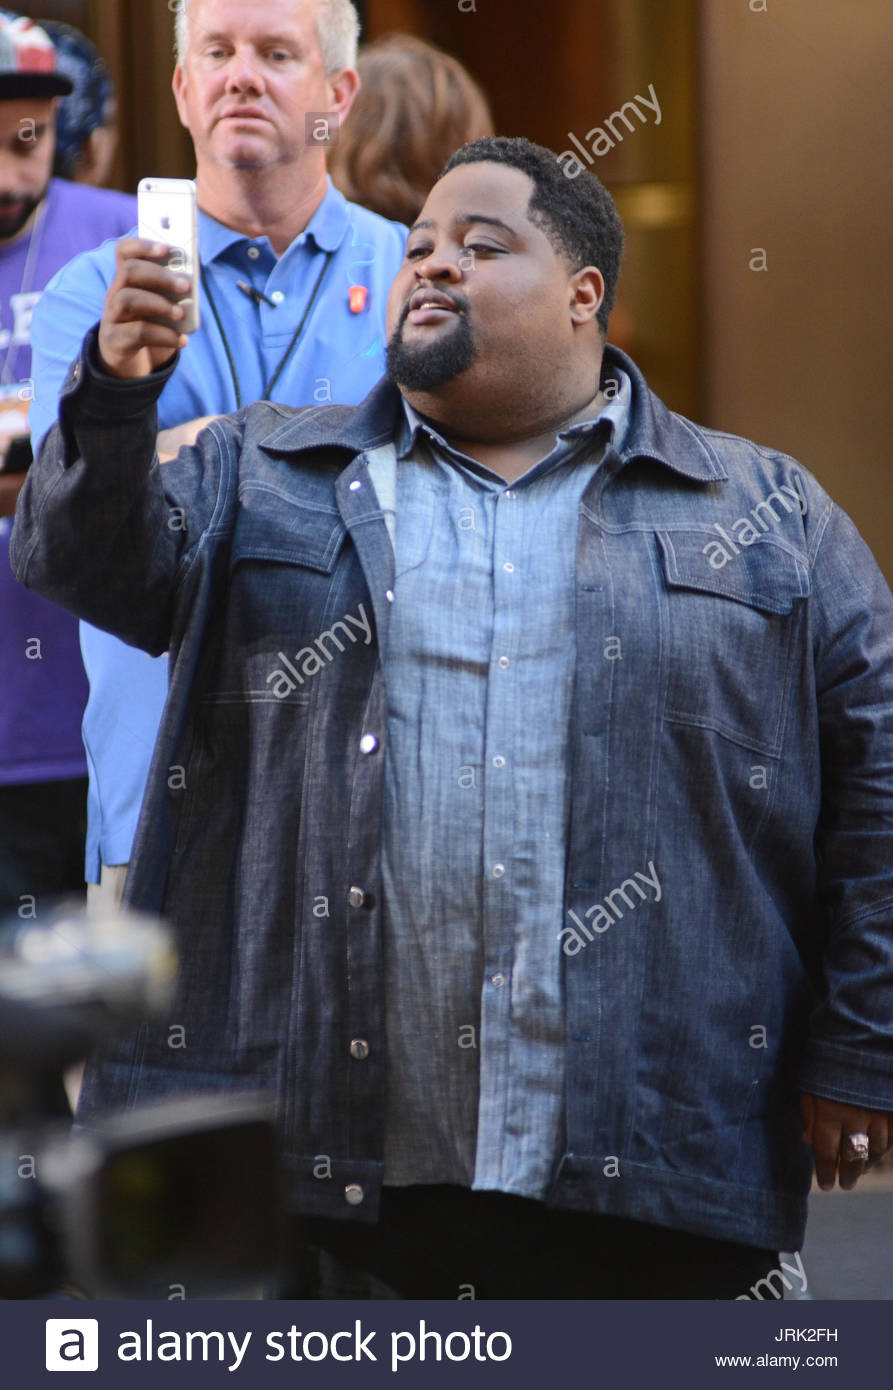 Gamal LunchMoney Lewis. Gamal LunchMoney Lewis performs on the Today Show, NYC - Stock Image